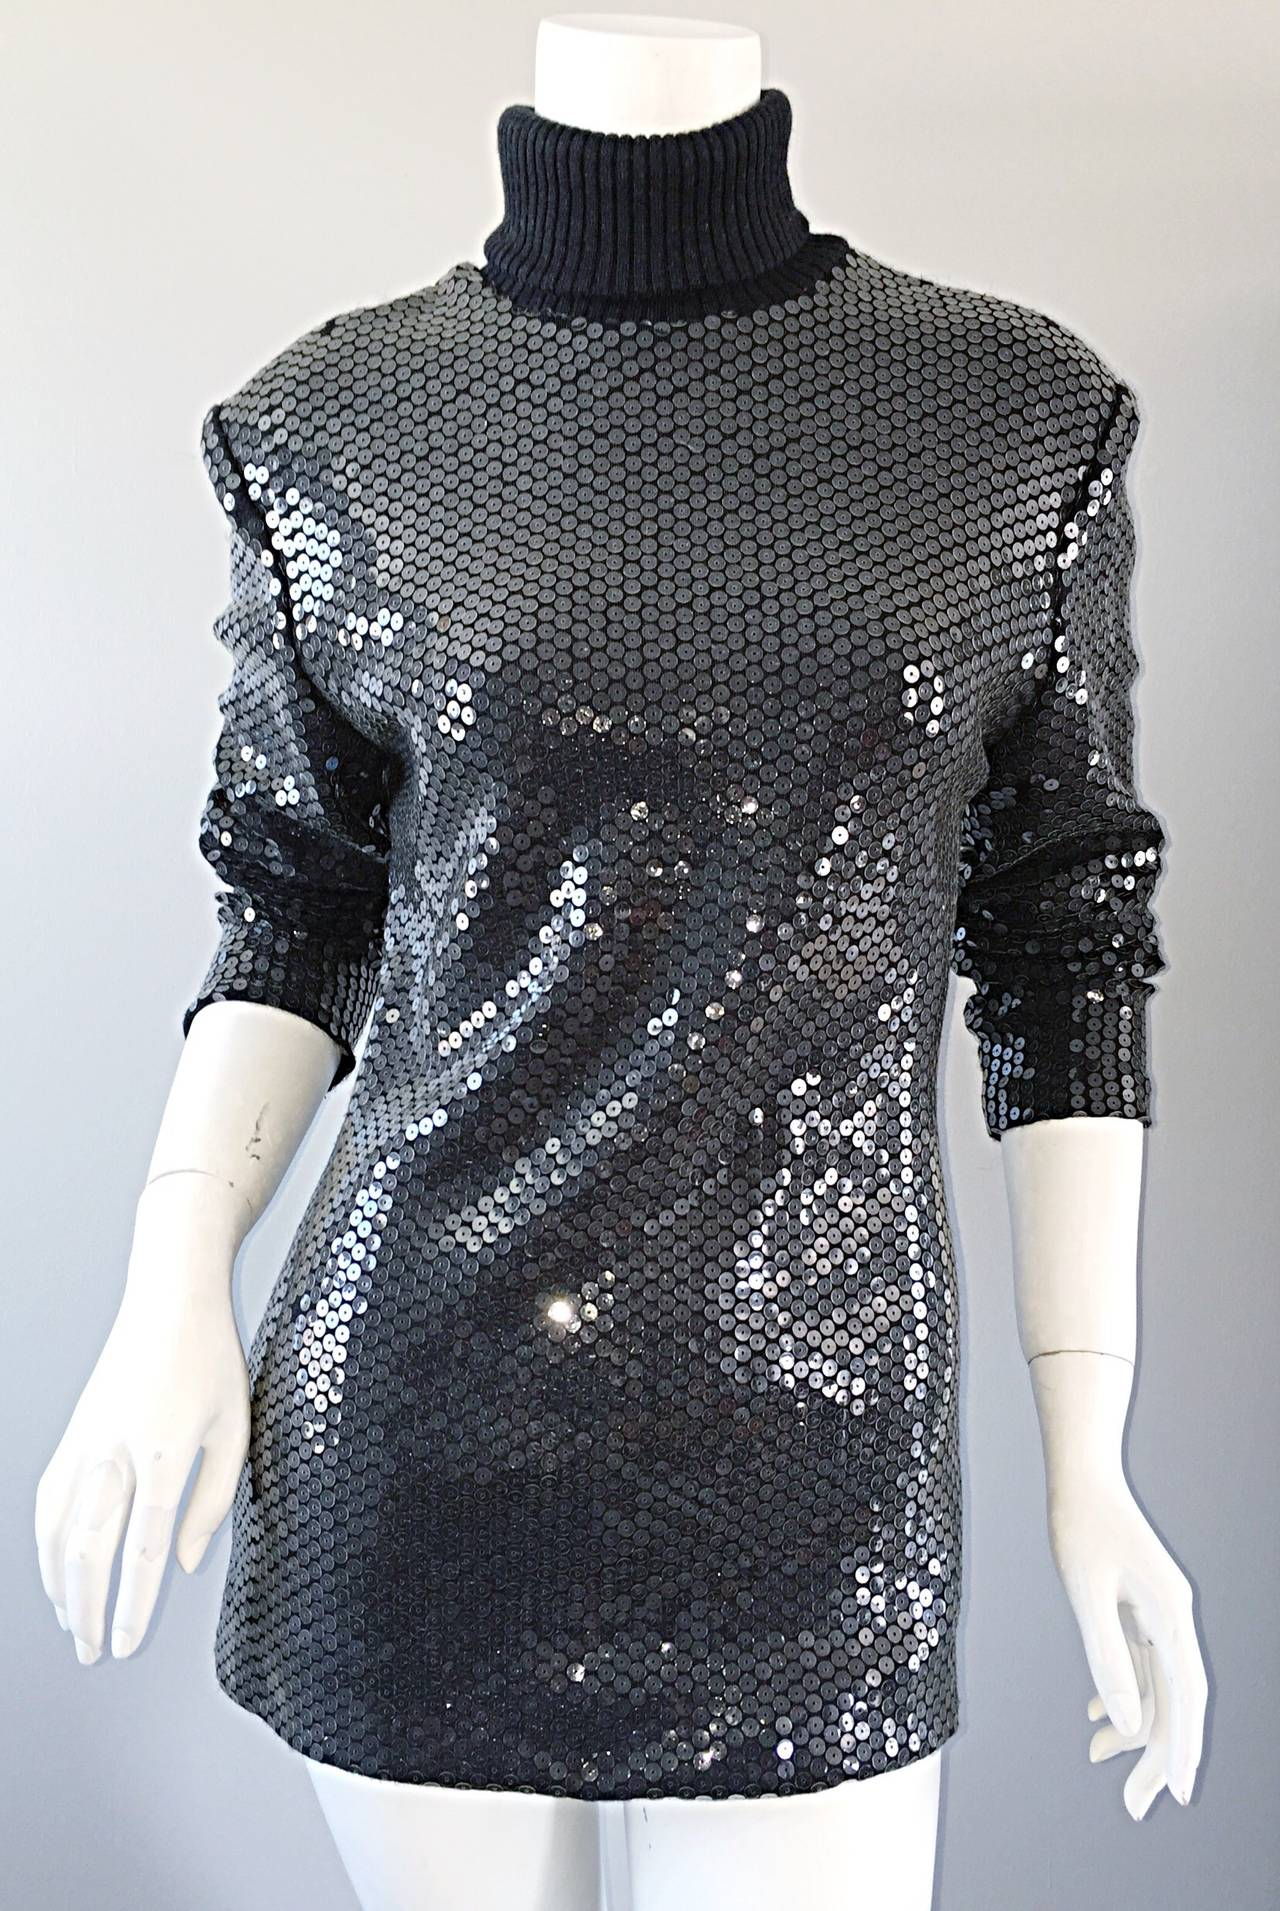 Rare Very Early Michael Kors Runway Sample Gray Sequins Turtleneck Sweater In Excellent Condition For Sale In San Francisco, CA